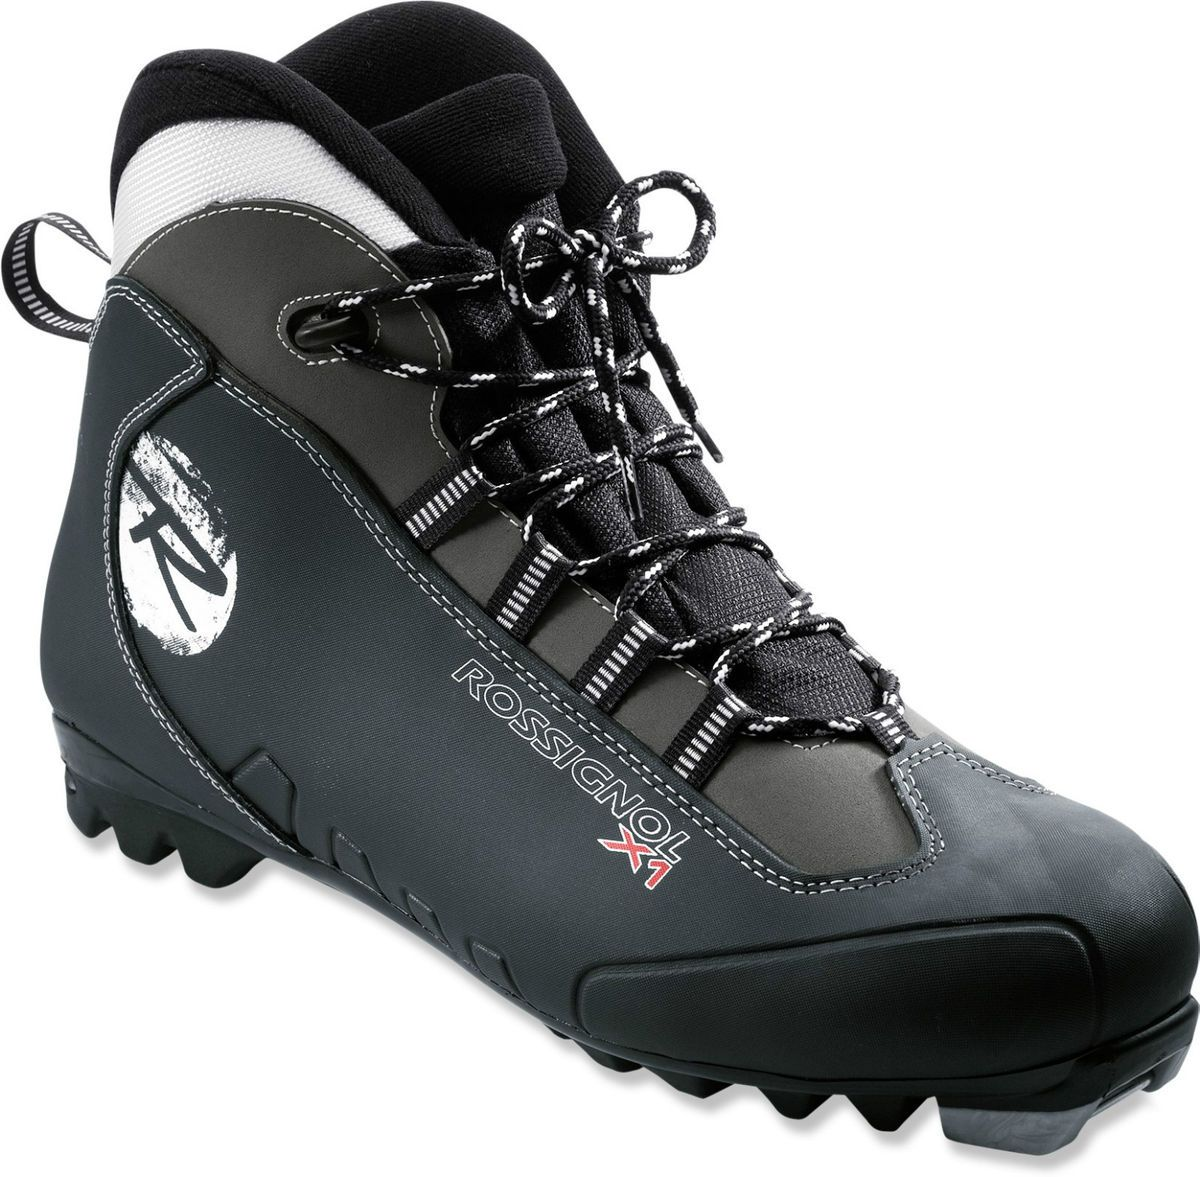 Rossignol x1 Black Padded Lined NNN Cross Country Ski Boots